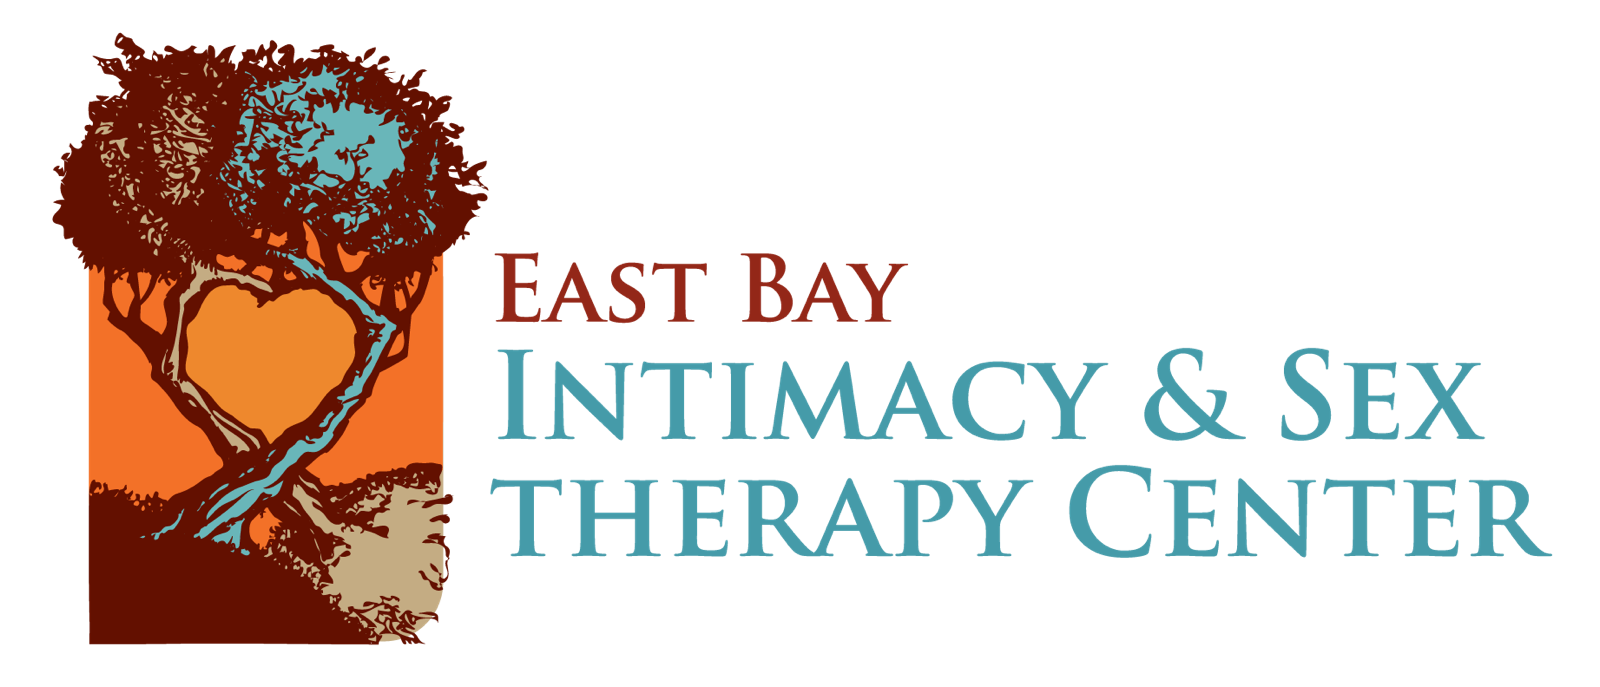 We are Proud to Welcome  - Our new sister clinic, The East Bay Intimacy & Sex Therapy Center, which is a highly specialized East Bay therapy center designed to promote healthy intimacy and sexual expression without shame or stigma.